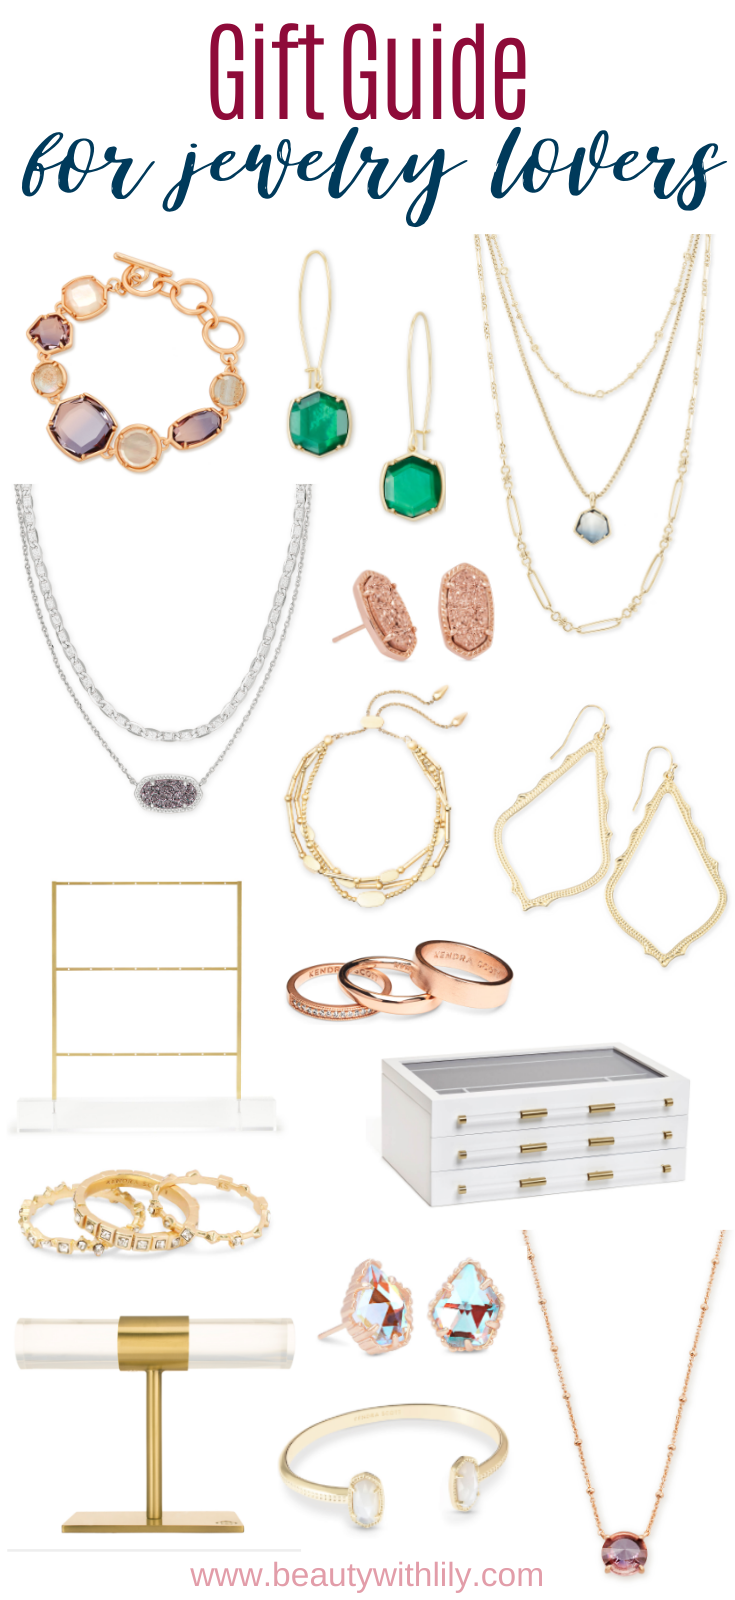 Gift Guide for Jewelry Lovers // Kendra Scott Jewelry // Accessories // Glam Accessories // Dainty Jewelry // Affordable Jewelry // Costume Jewelry // Christmas Gift Ideas // Gift Ideas for Her // Women Gift Guide | Beauty With Lily